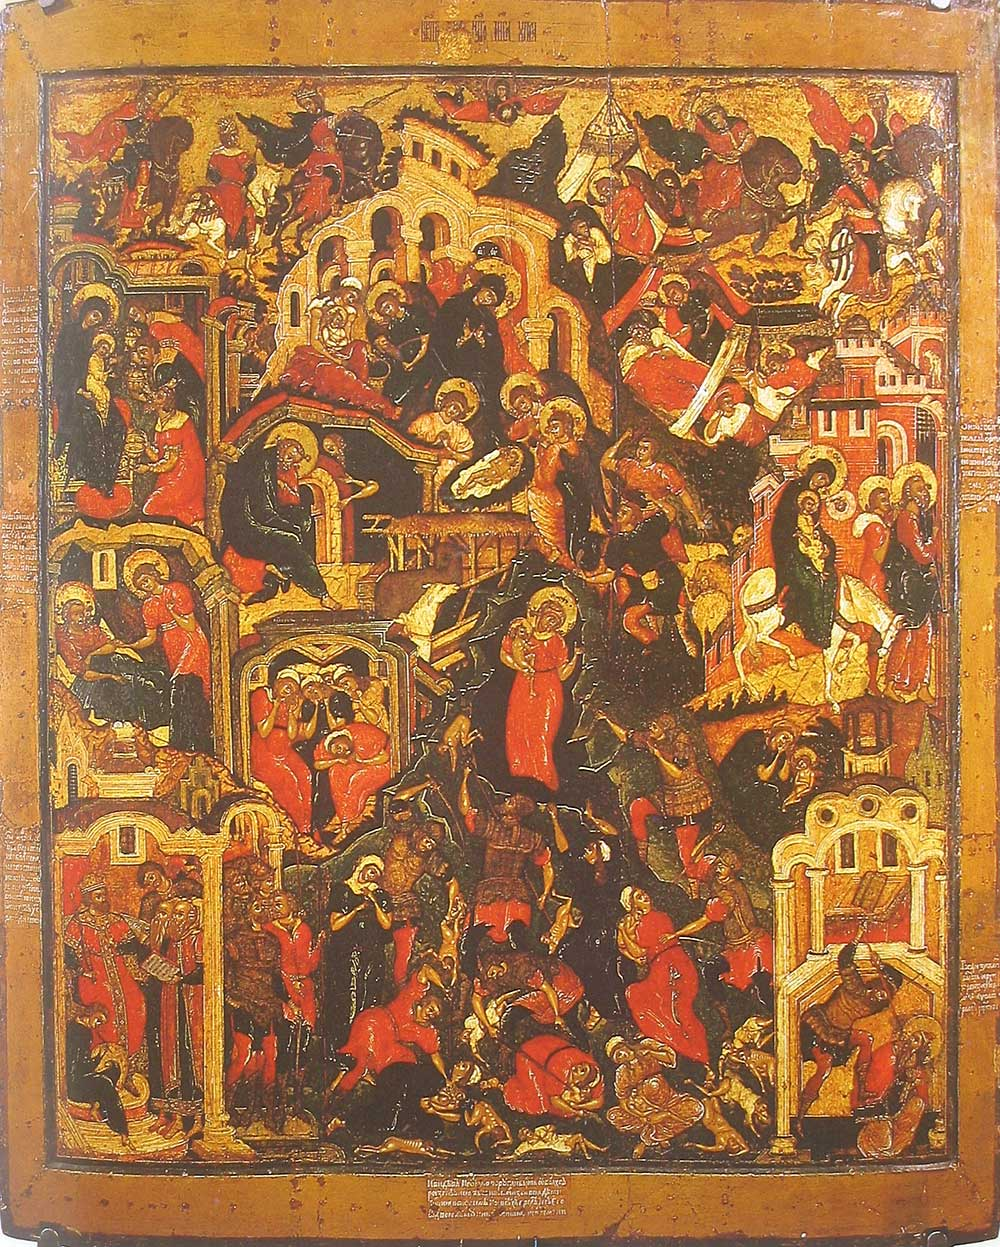 Herode looking to kill the saviour Jesus Christ killing the 14000 infant martyrs in Bethleem